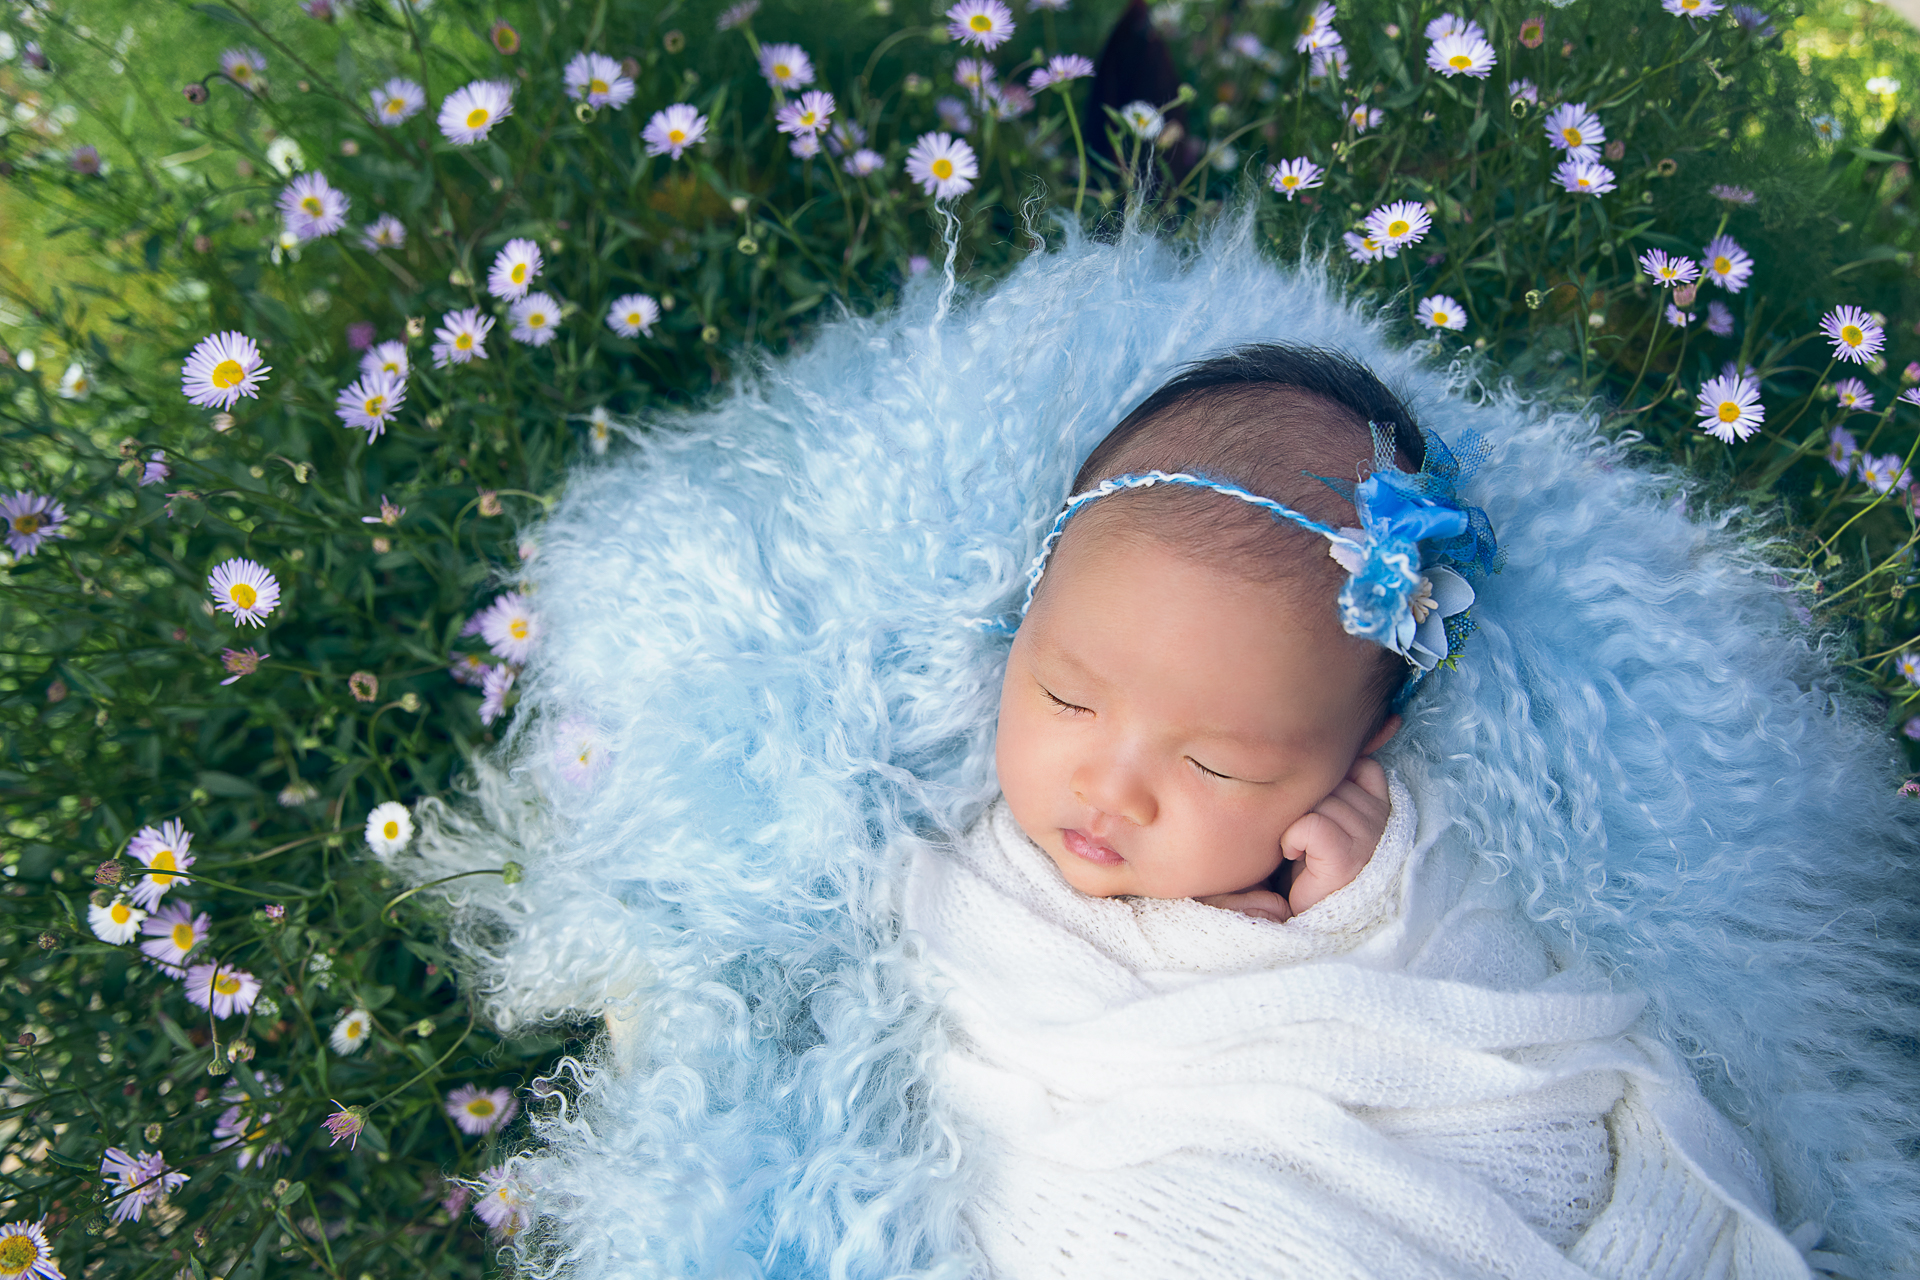 Newborn rests outdoors while wearing white wrap. Blue fluffy carpet and margaritas flowers decorates the scene.